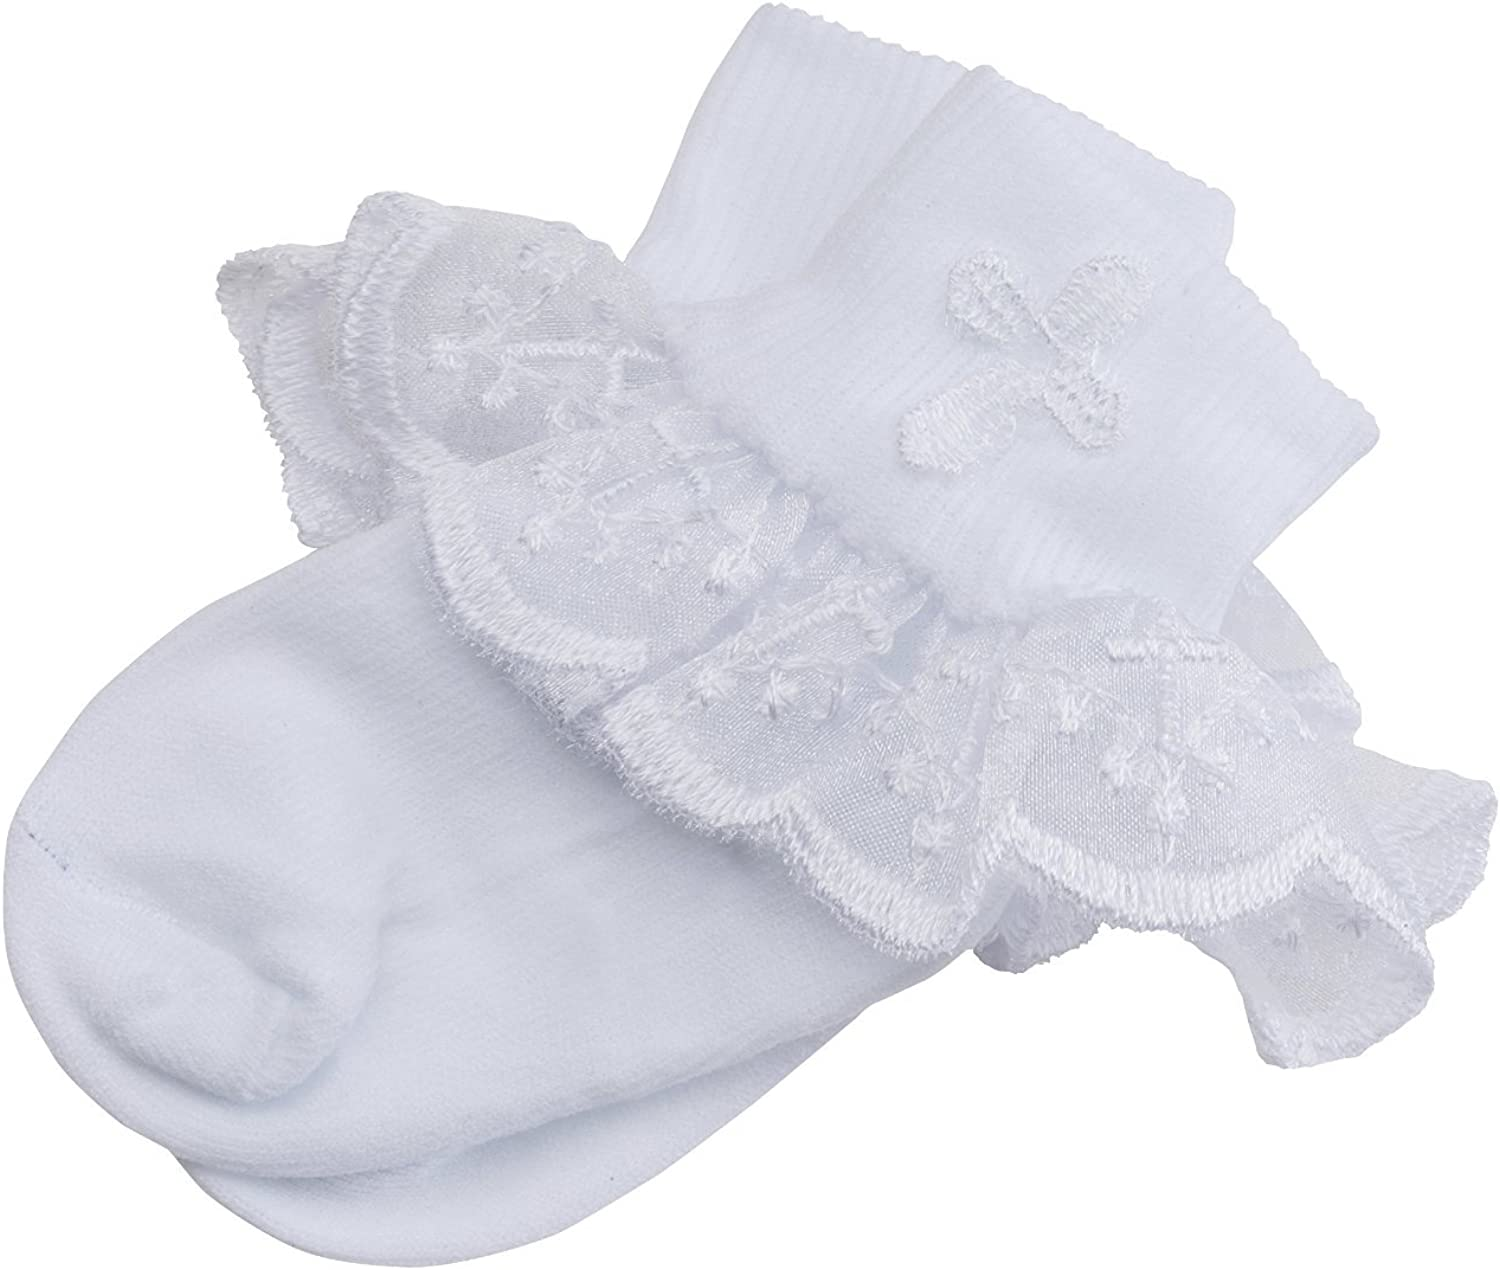 Baptism Lace Trim Socks White Ivory Embroidered Cross Baby Infant Christening